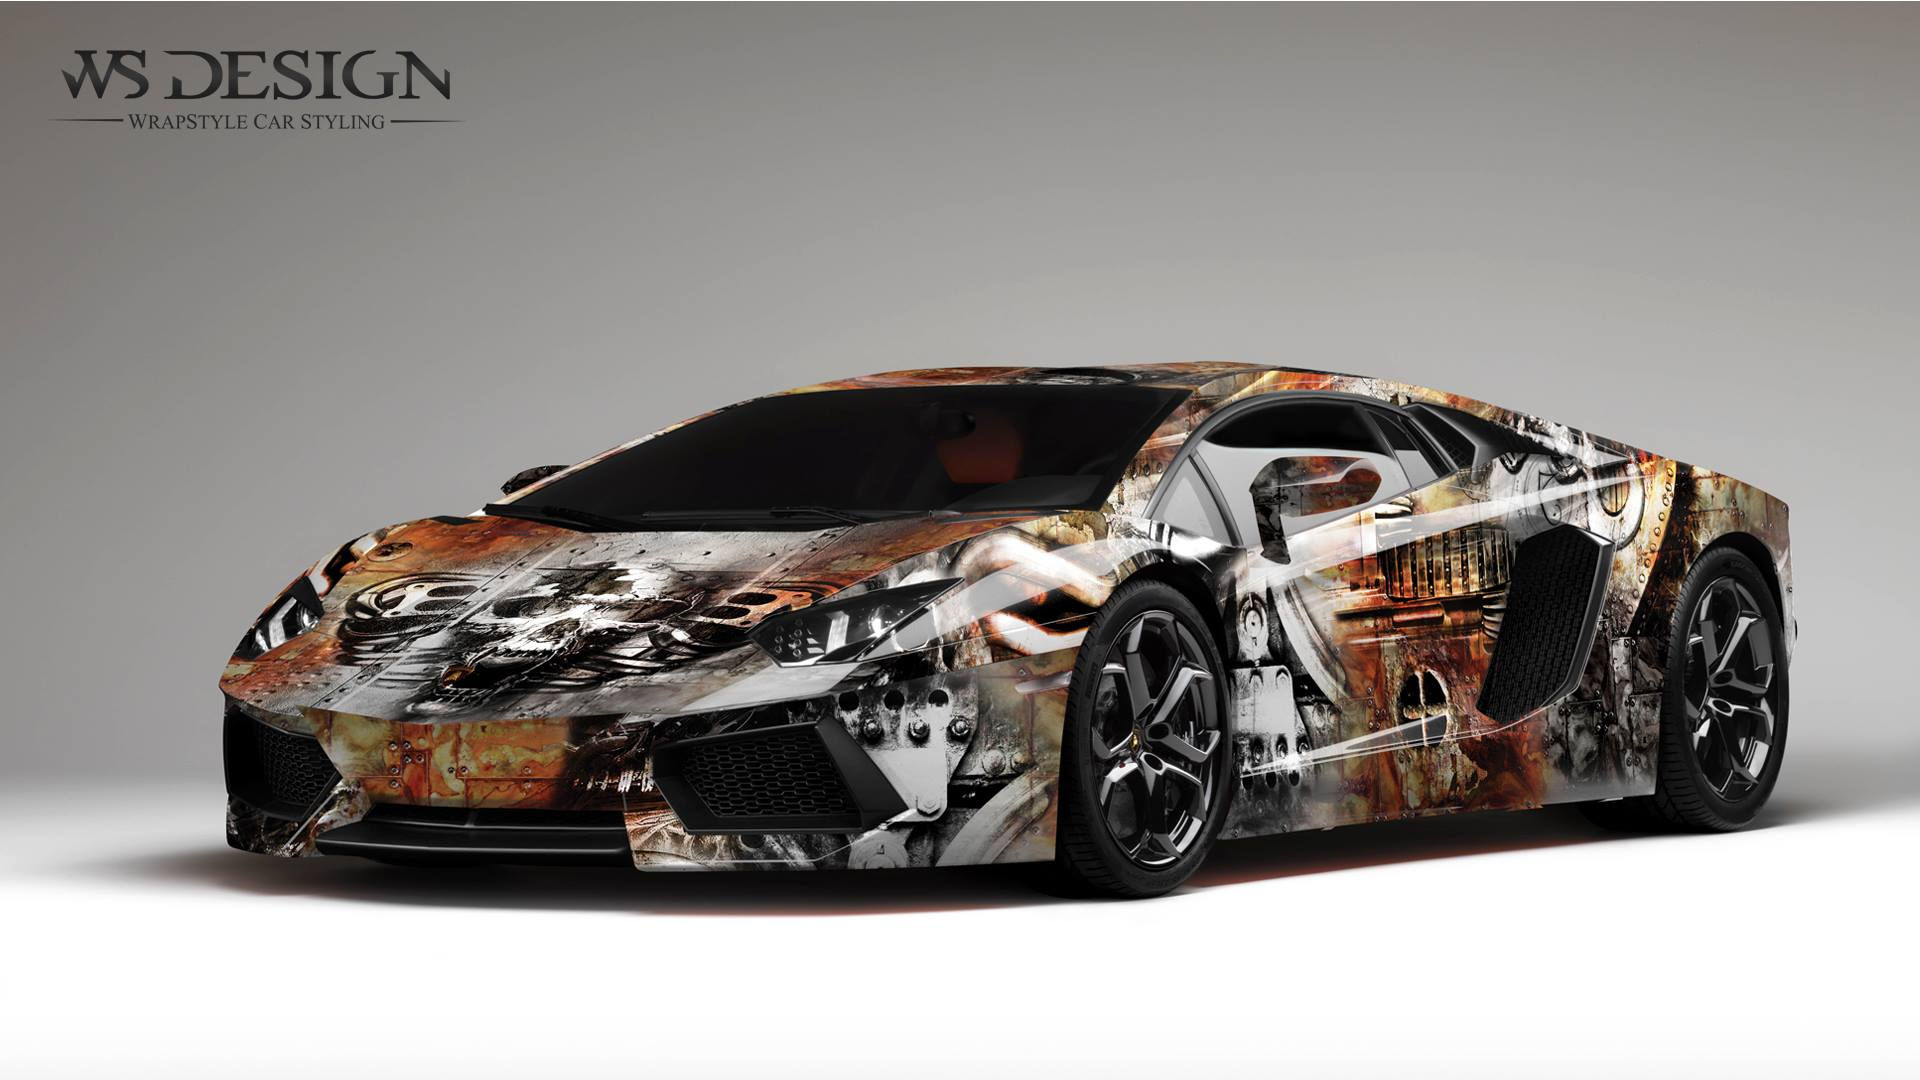 Nice Home Car Wrapping Lamborghini Aventador Art Design Wraps By WS Designs.  Rust Design